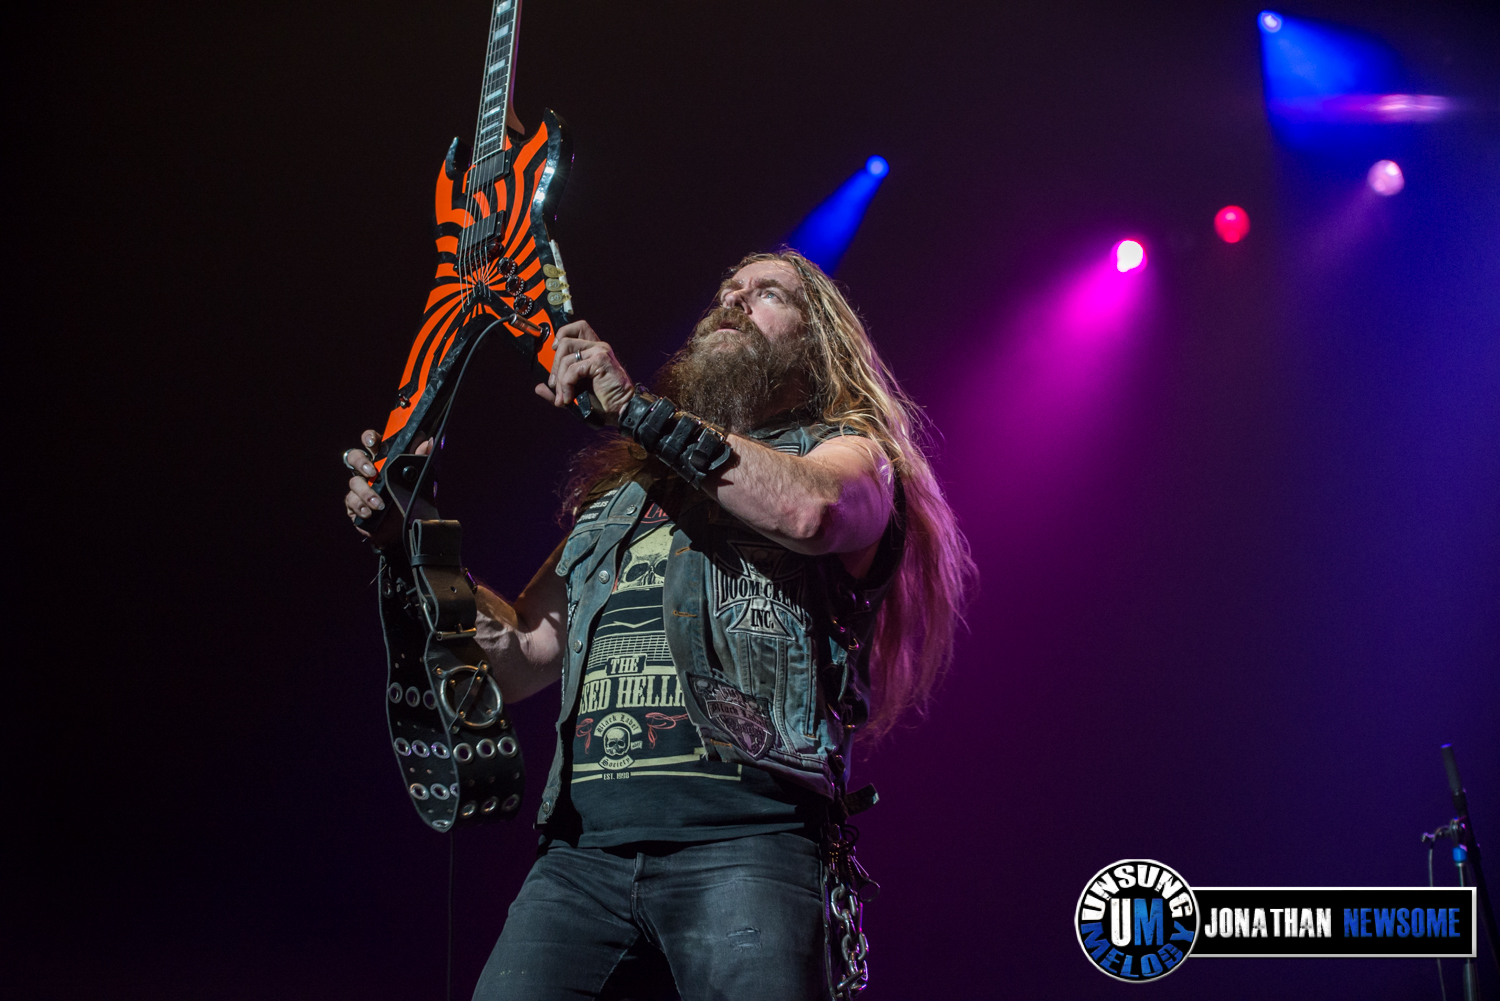 PHOTOS: The 2014 Edition of the Experience Hendrix Tour in the Whitney Hall at the Kentucky Center for the Performing Arts in Louisville, KY